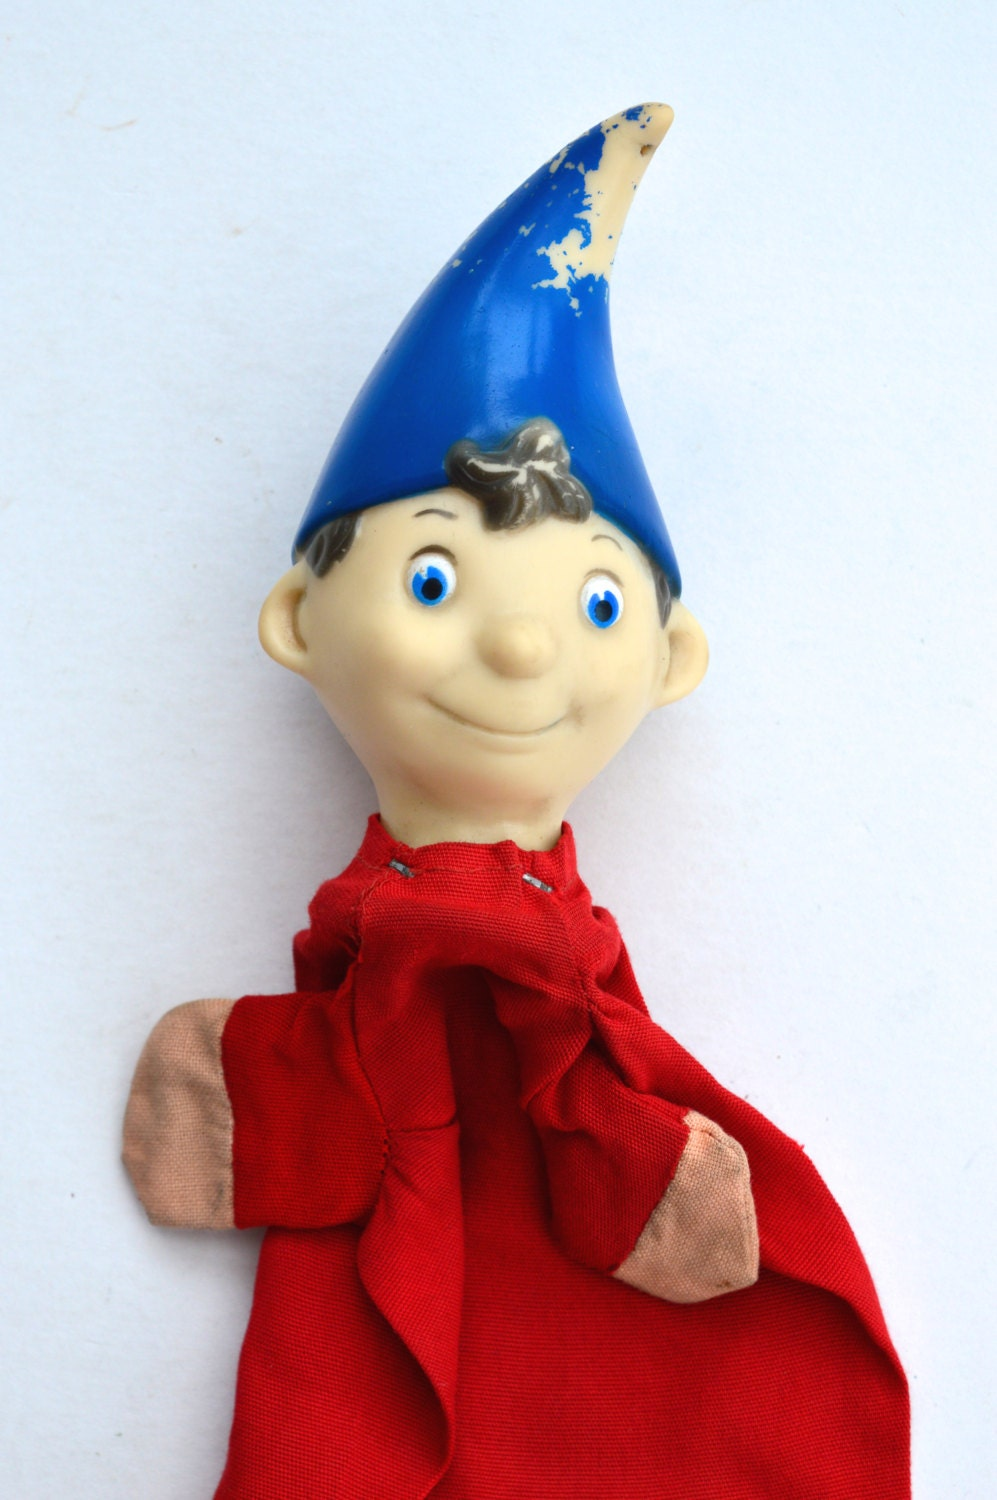 1960s Chad Valley Noddy Glove Puppet Vintage Childrens Toy Retro Childrens Toy Childrens Television Enid Blyton Big Ears Toyland